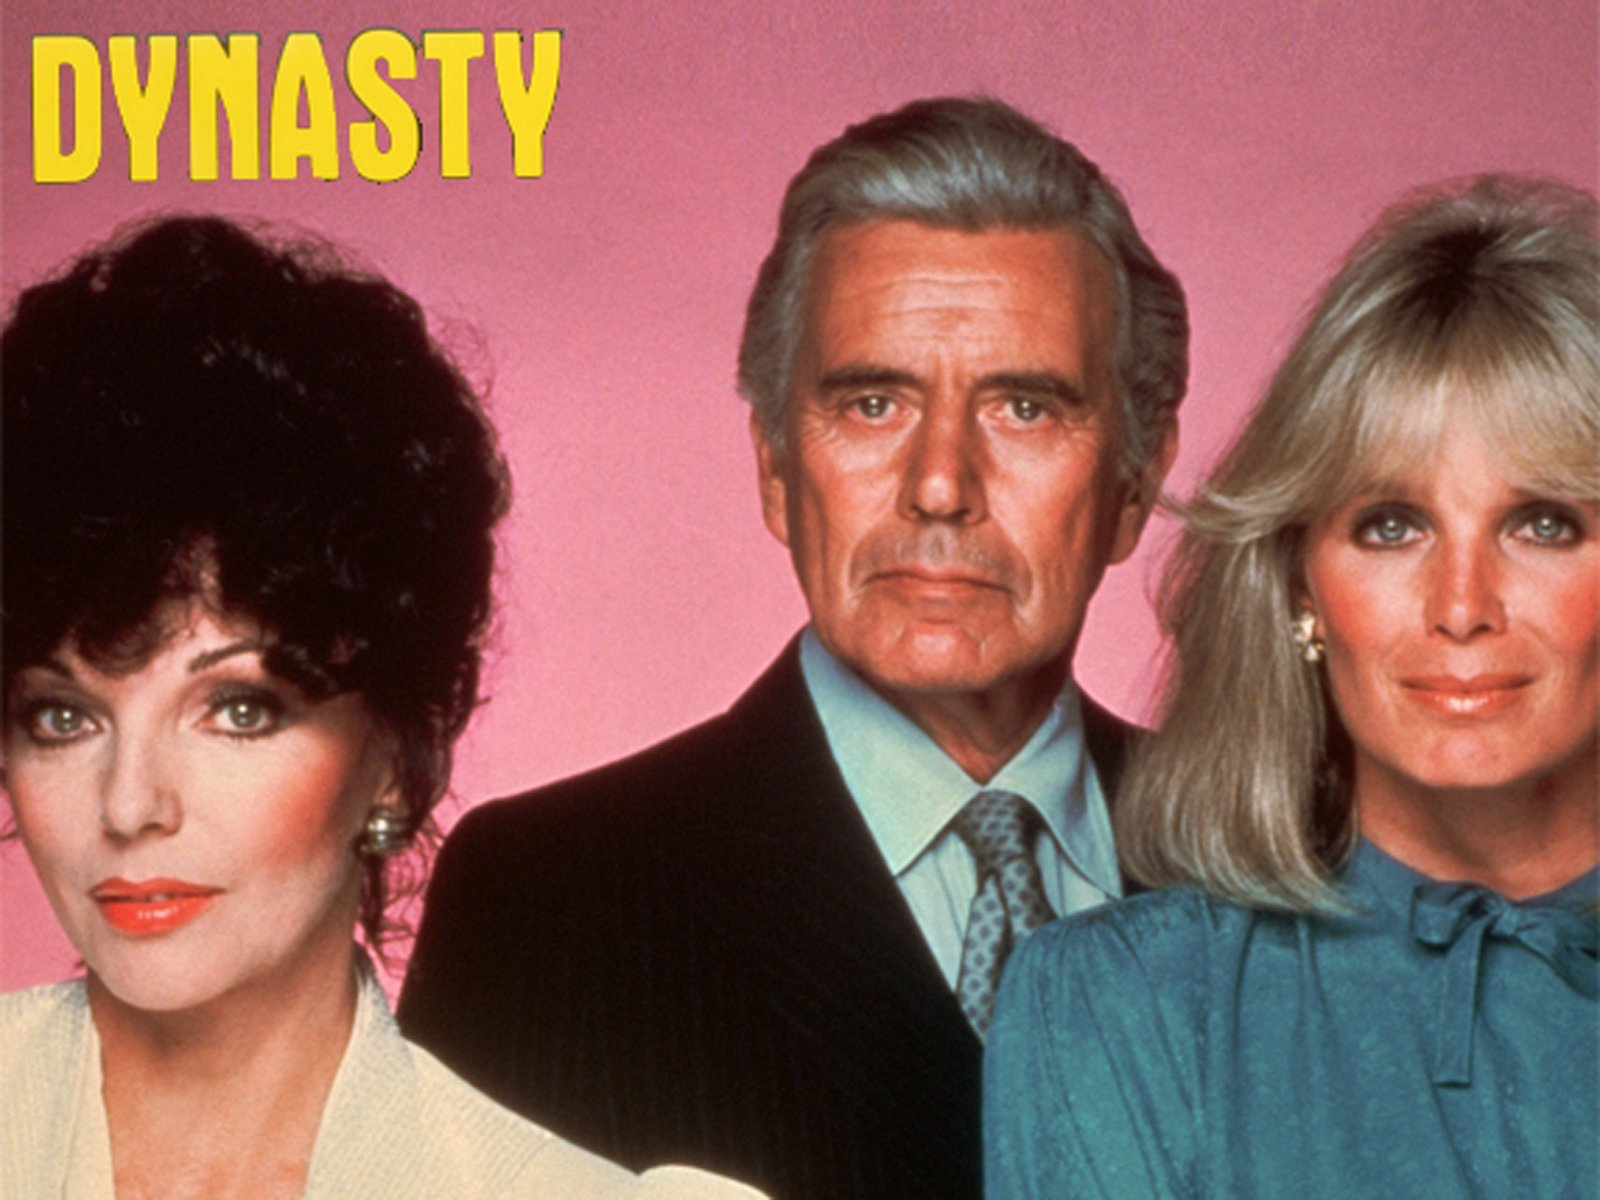 Dynasty  – S1 Ep7 – The Chauffeur Tells a Secret